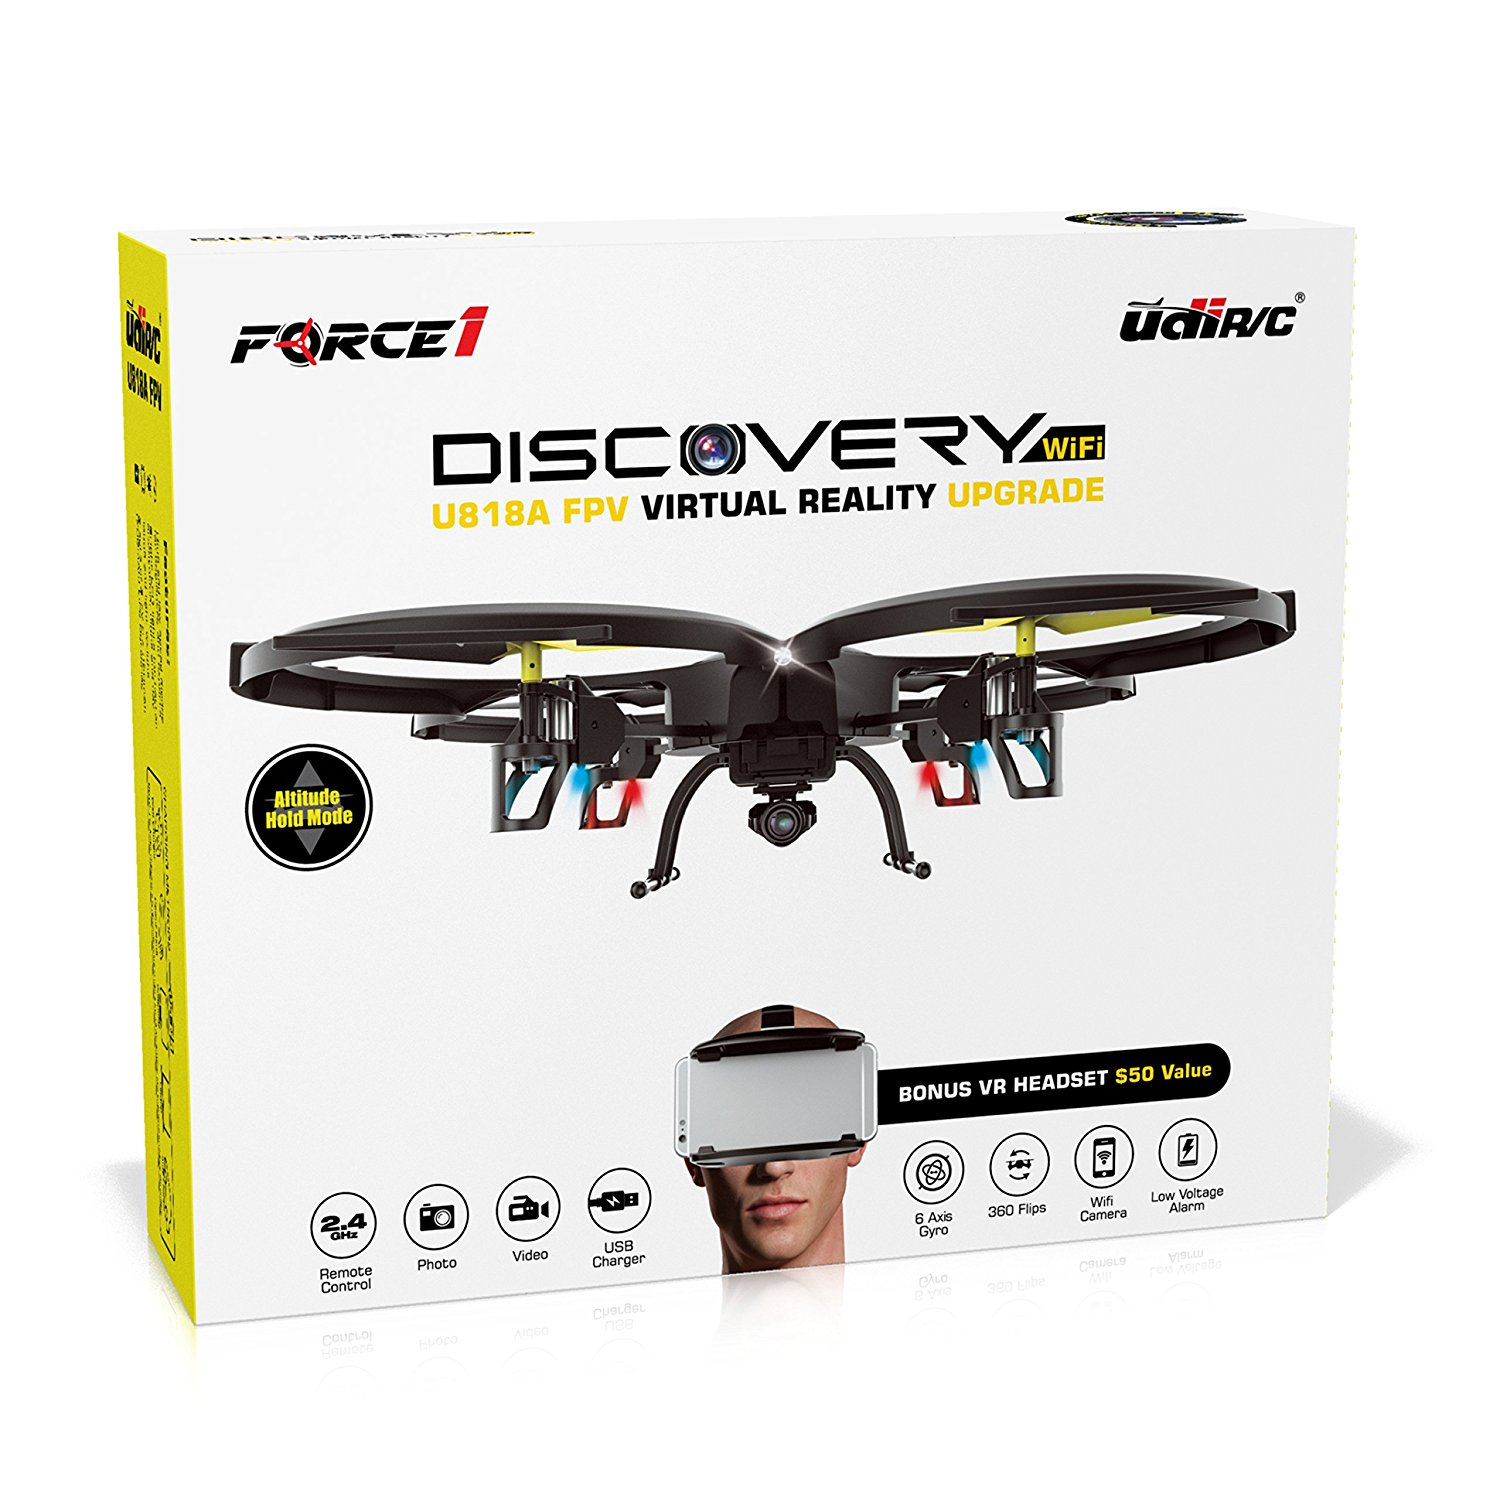 1. Force1 UDI U818A Headset Drone